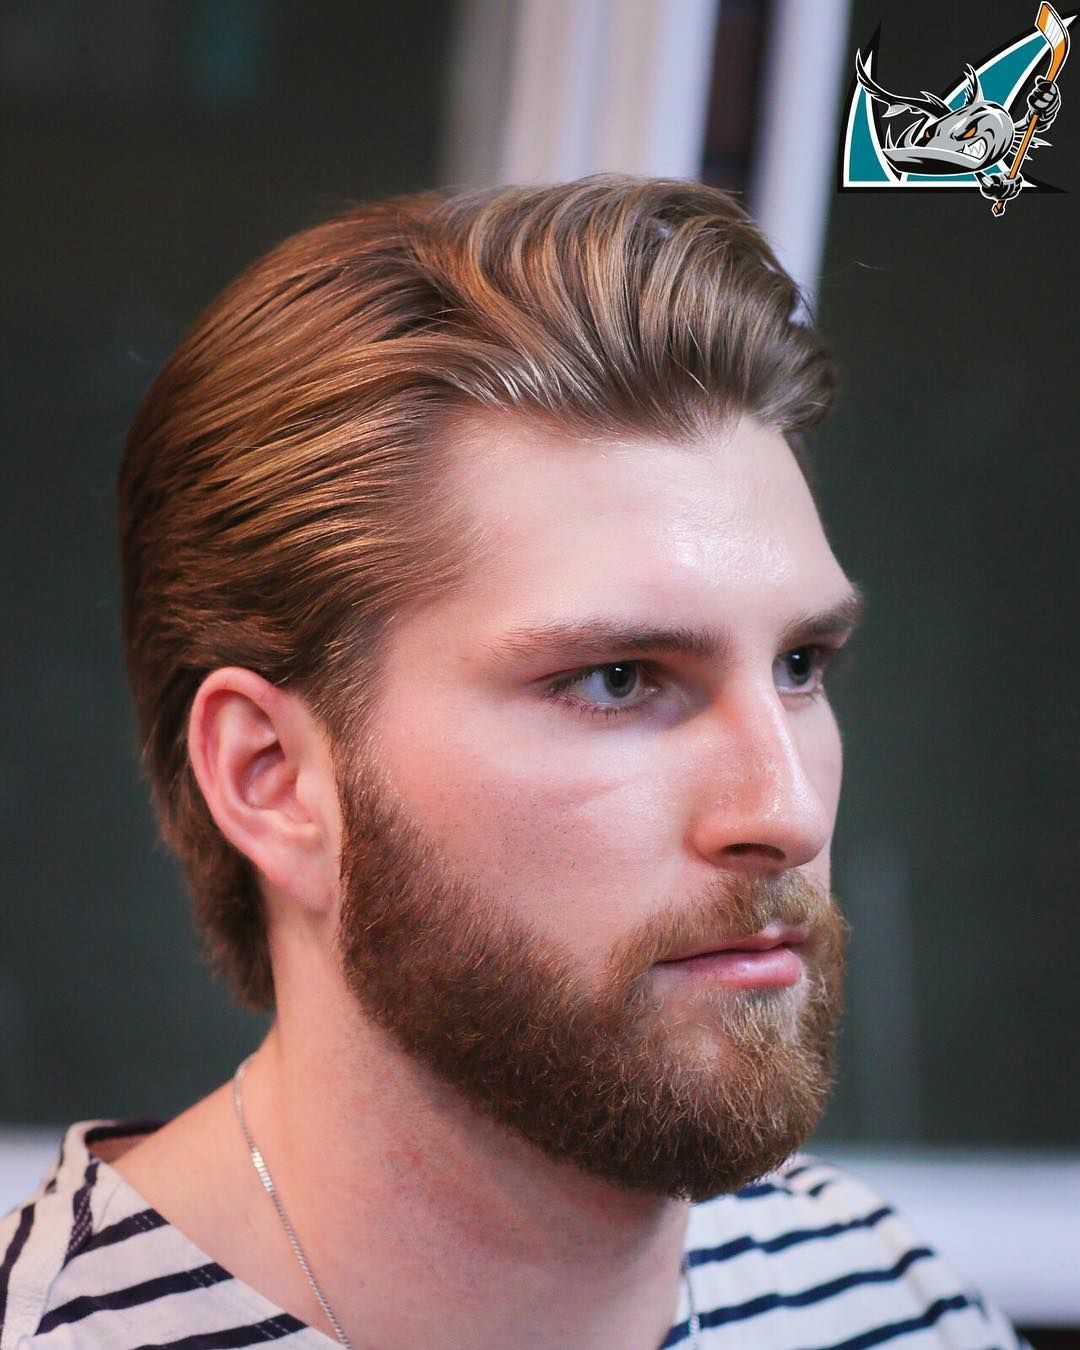 How To Grow Your Hair Out Men S Tutorial Growing Hair Men Men Grow Hair Growing Hair Out Men